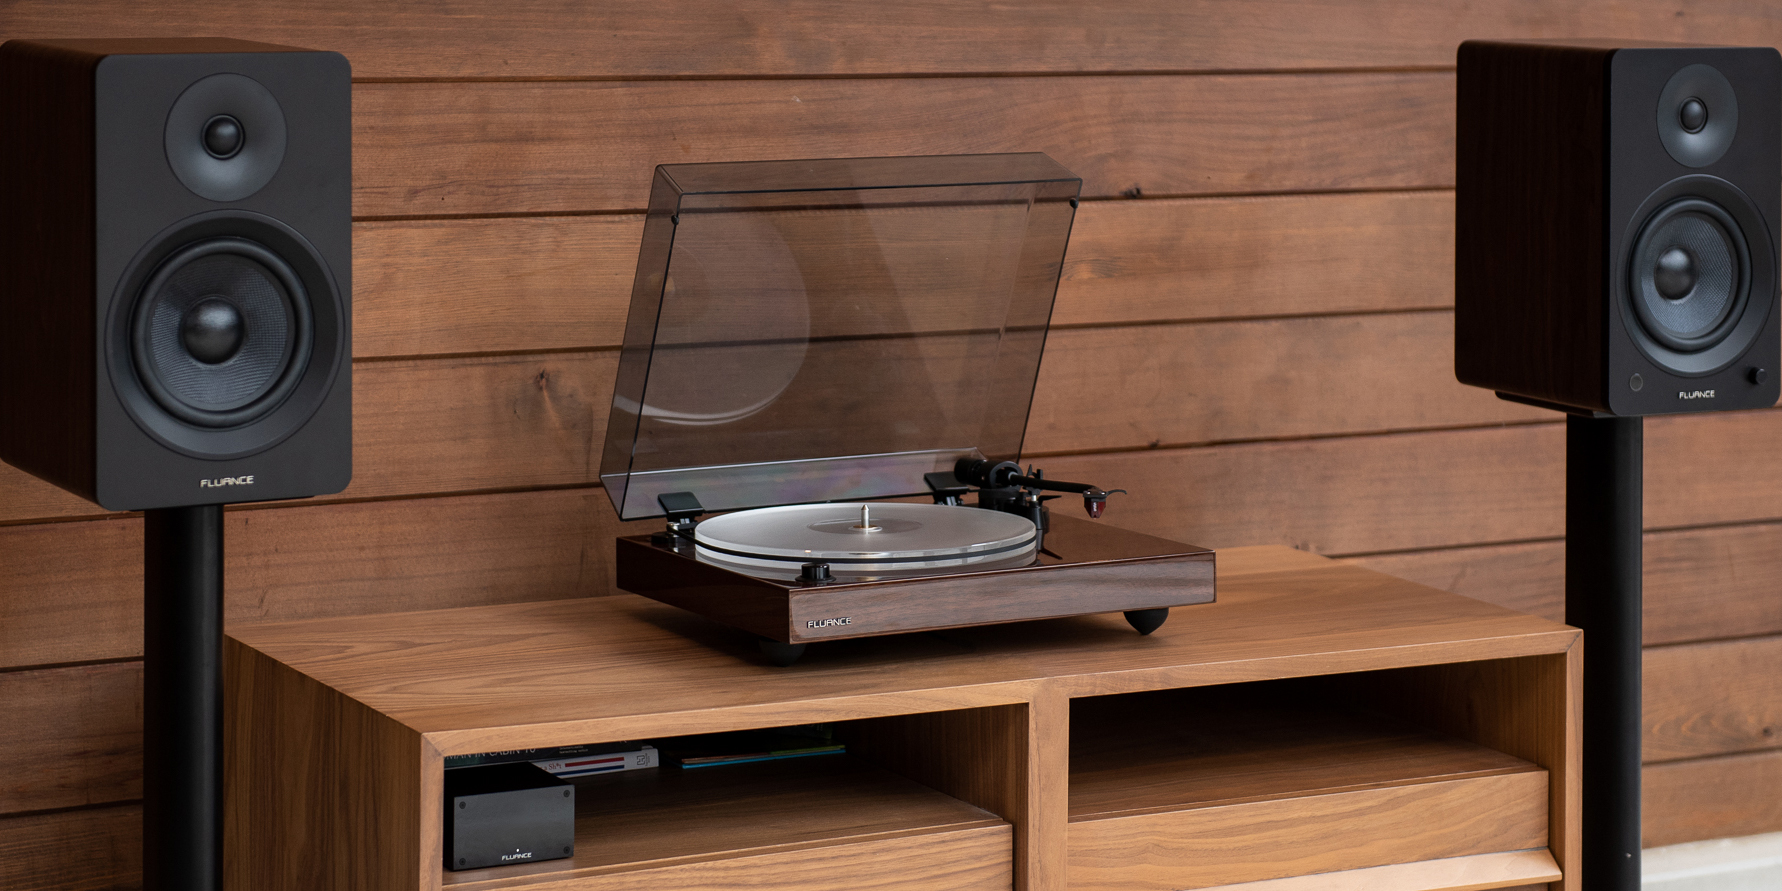 Fluance refreshes its turntable lineup with new walnut exteriors, more